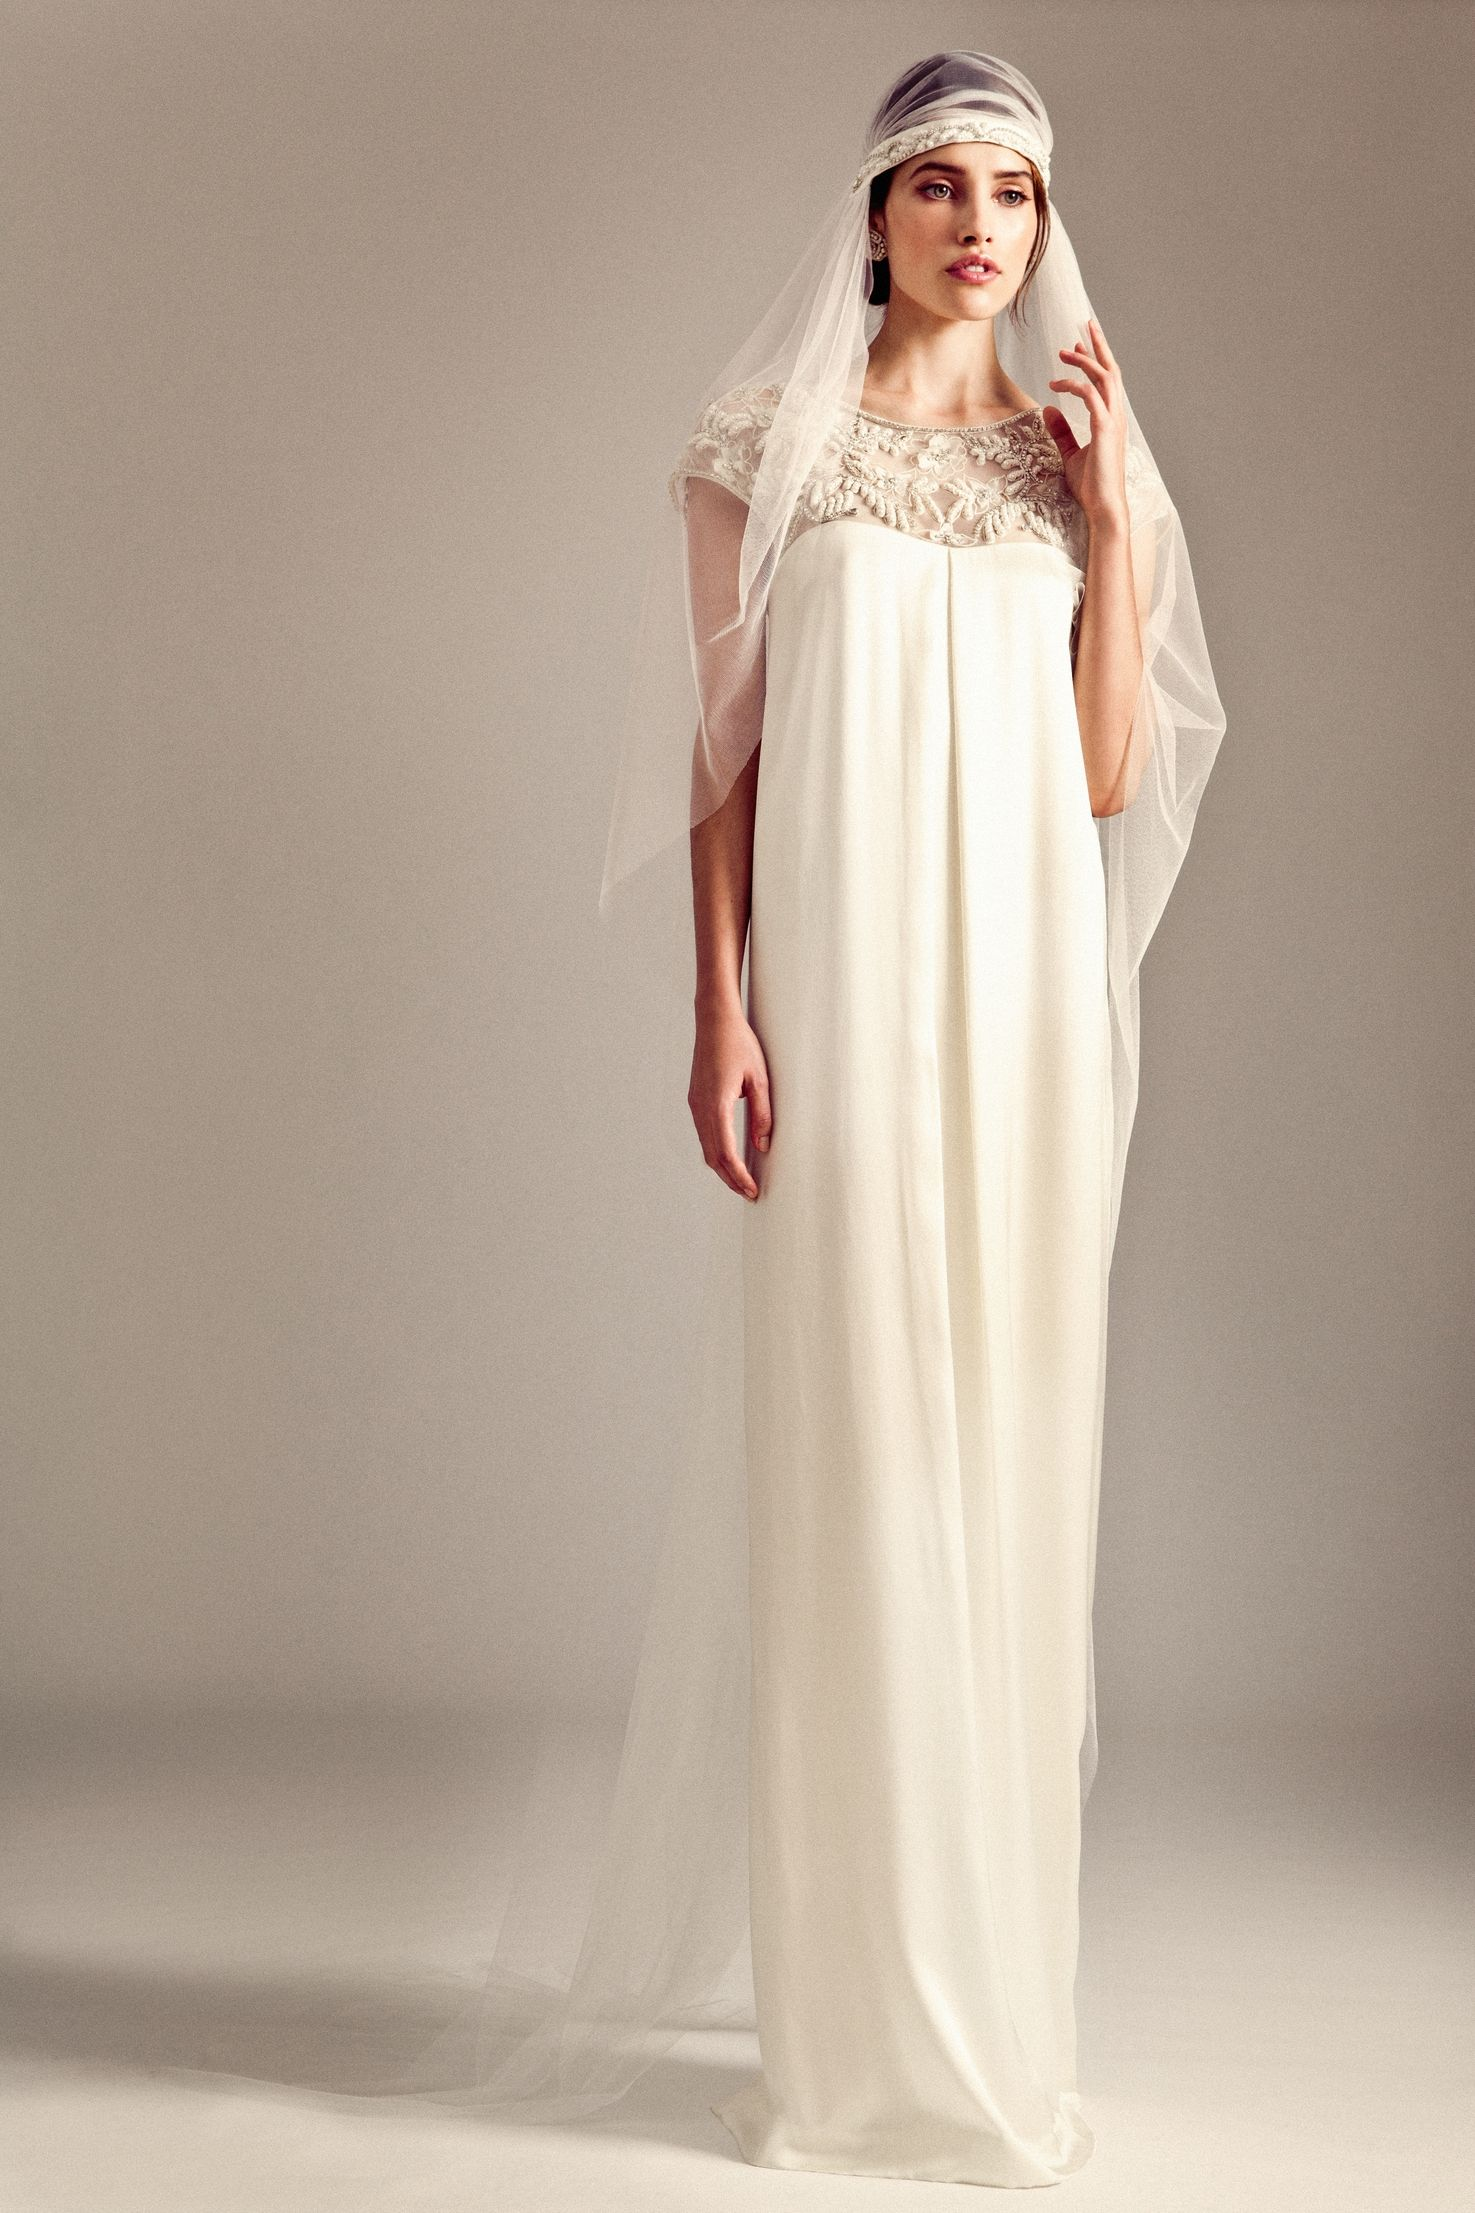 Alice temperley wedding dresses  Jemima Dress Gatsby Crystal Veil from the Temperley Bridal Iris